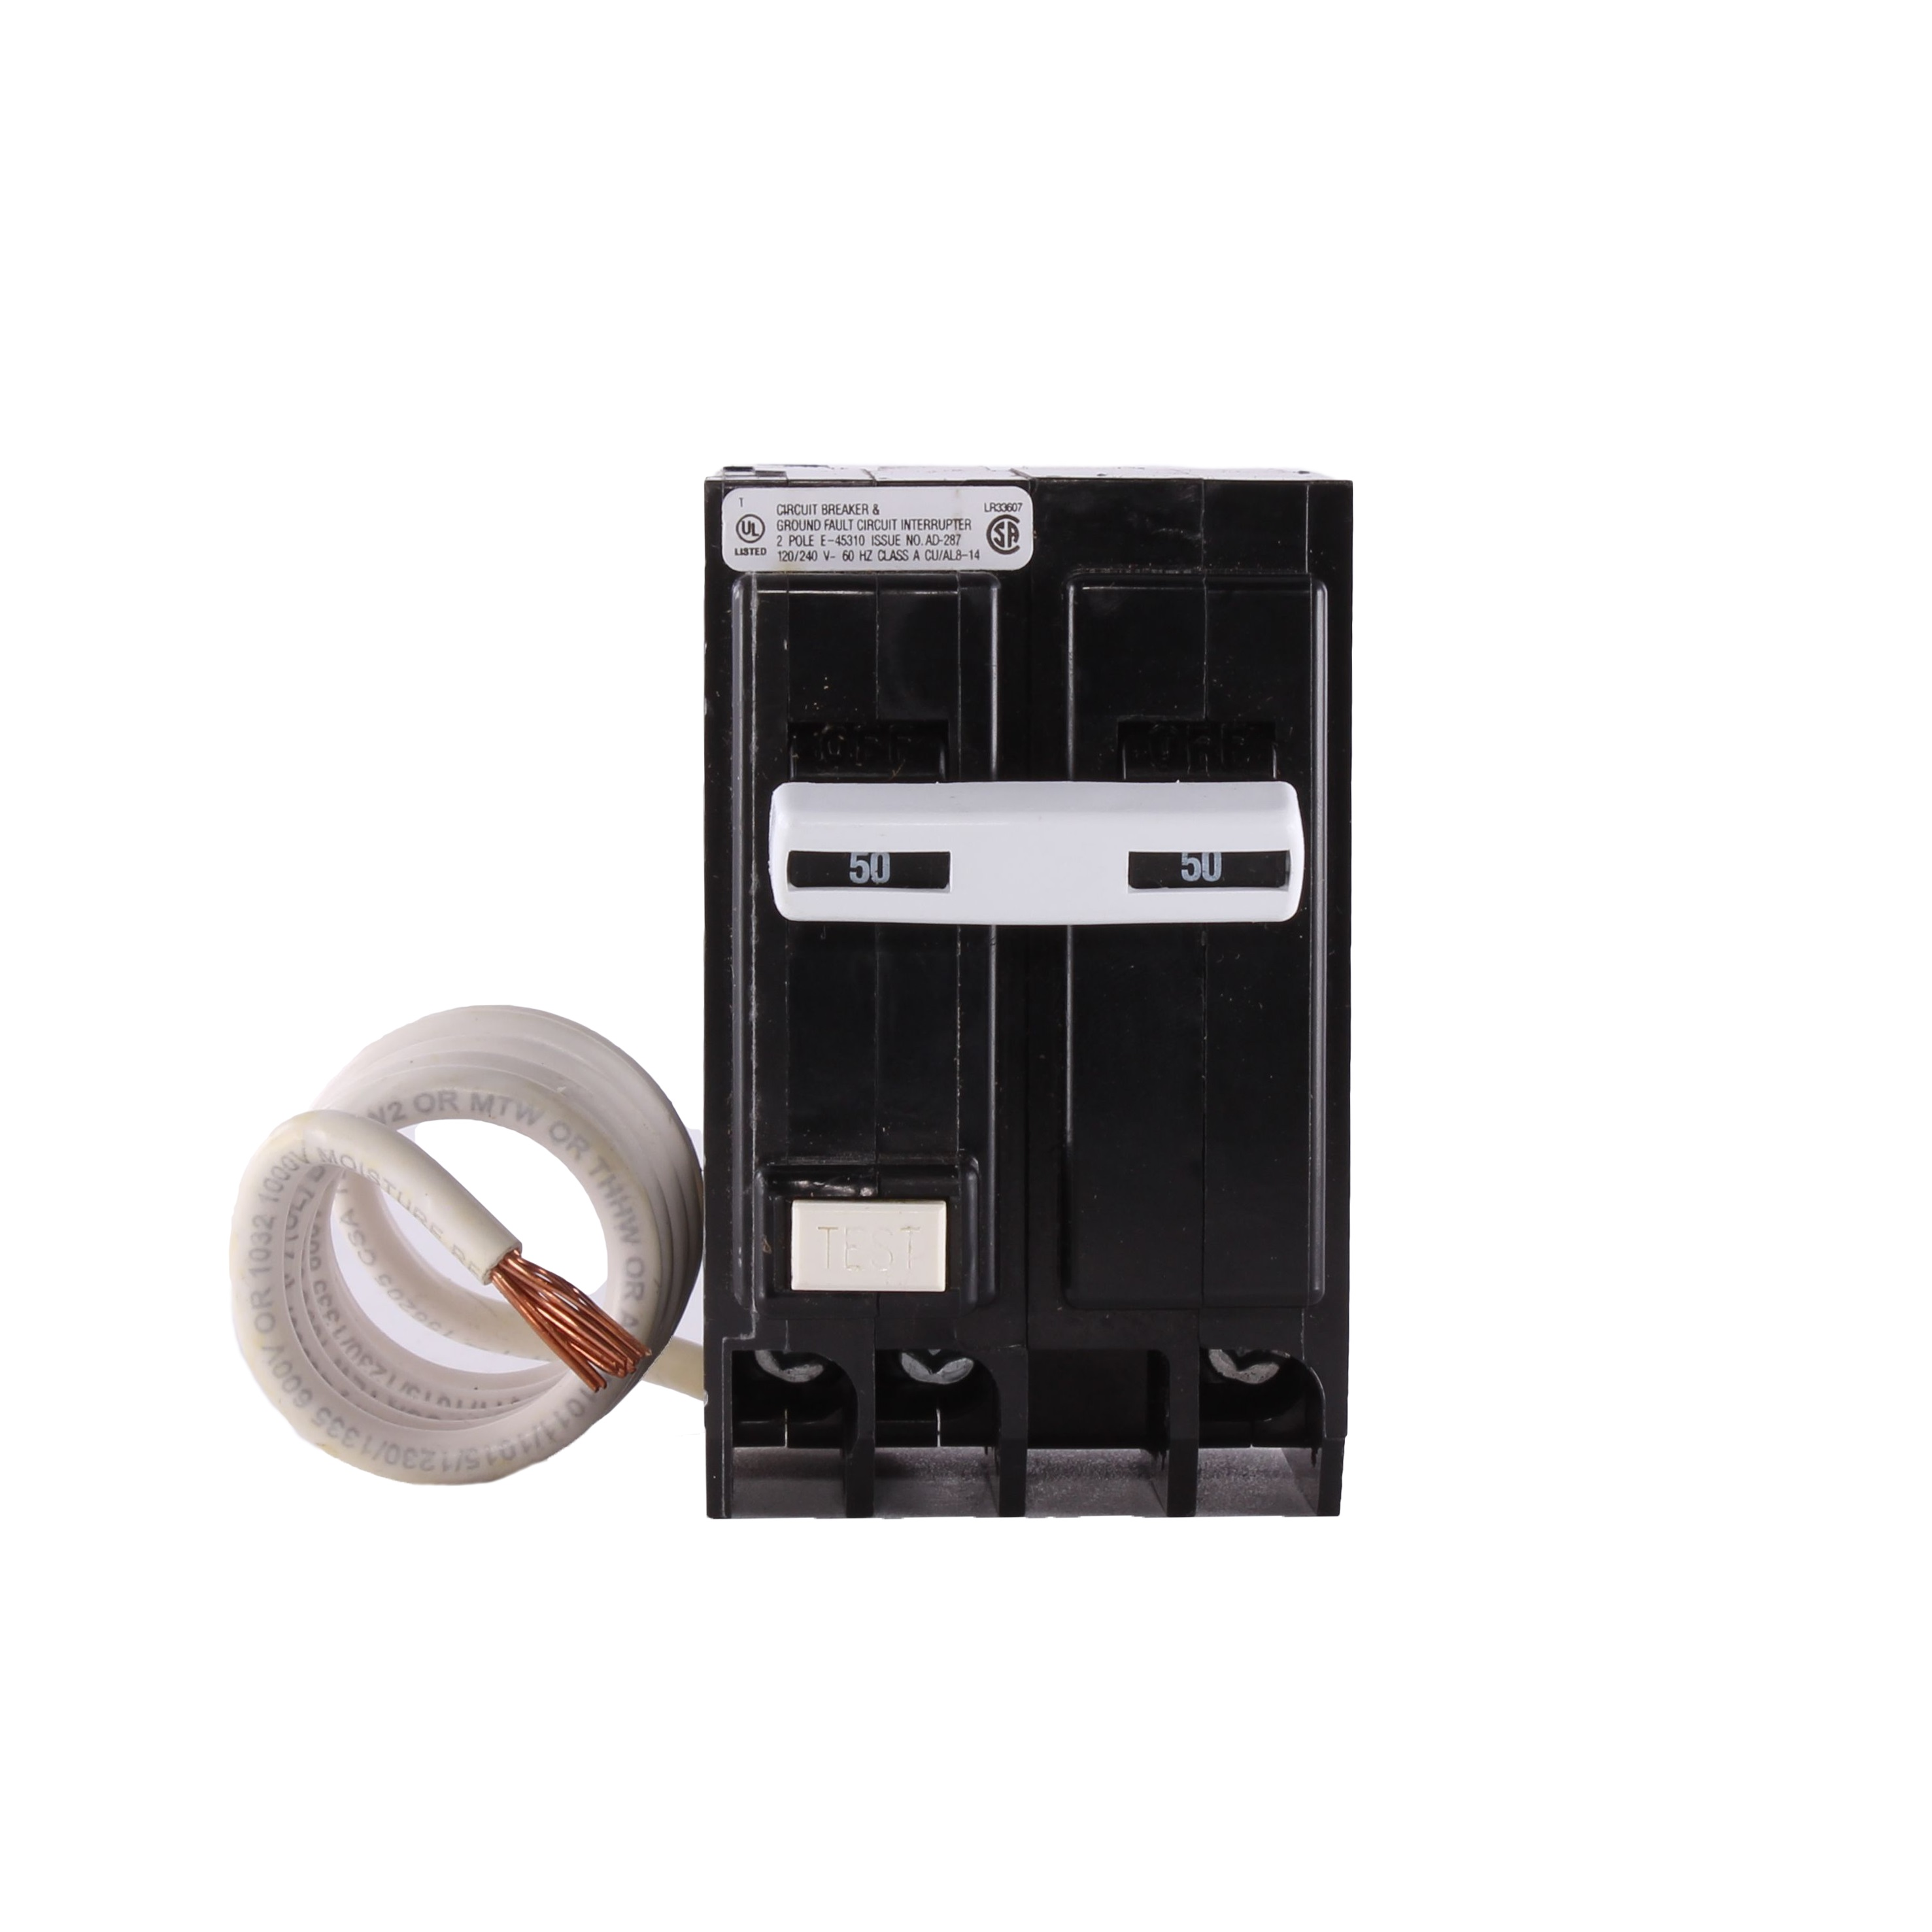 GE Industrial Solutions THQL2150GFT 2-Pole 50 Amp 120/240 Volt 10 Kaic 1 Inch Plug-In Molded Case Circuit Breaker